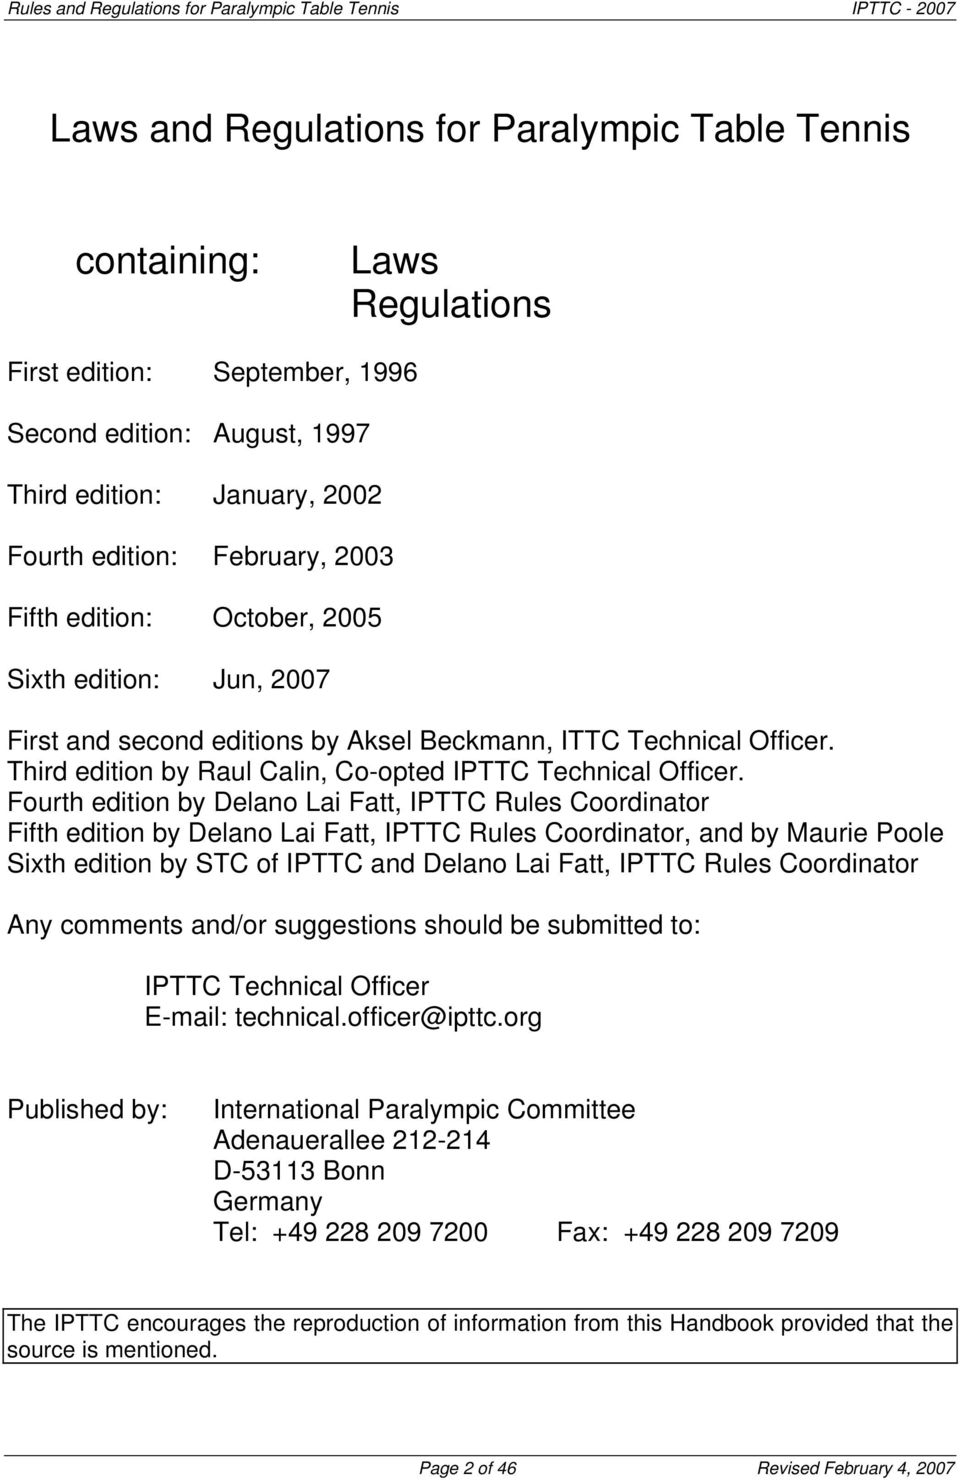 Fourth edition by Delano Lai Fatt, IPTTC Rules Coordinator Fifth edition by Delano Lai Fatt, IPTTC Rules Coordinator, and by Maurie Poole Sixth edition by STC of IPTTC and Delano Lai Fatt, IPTTC